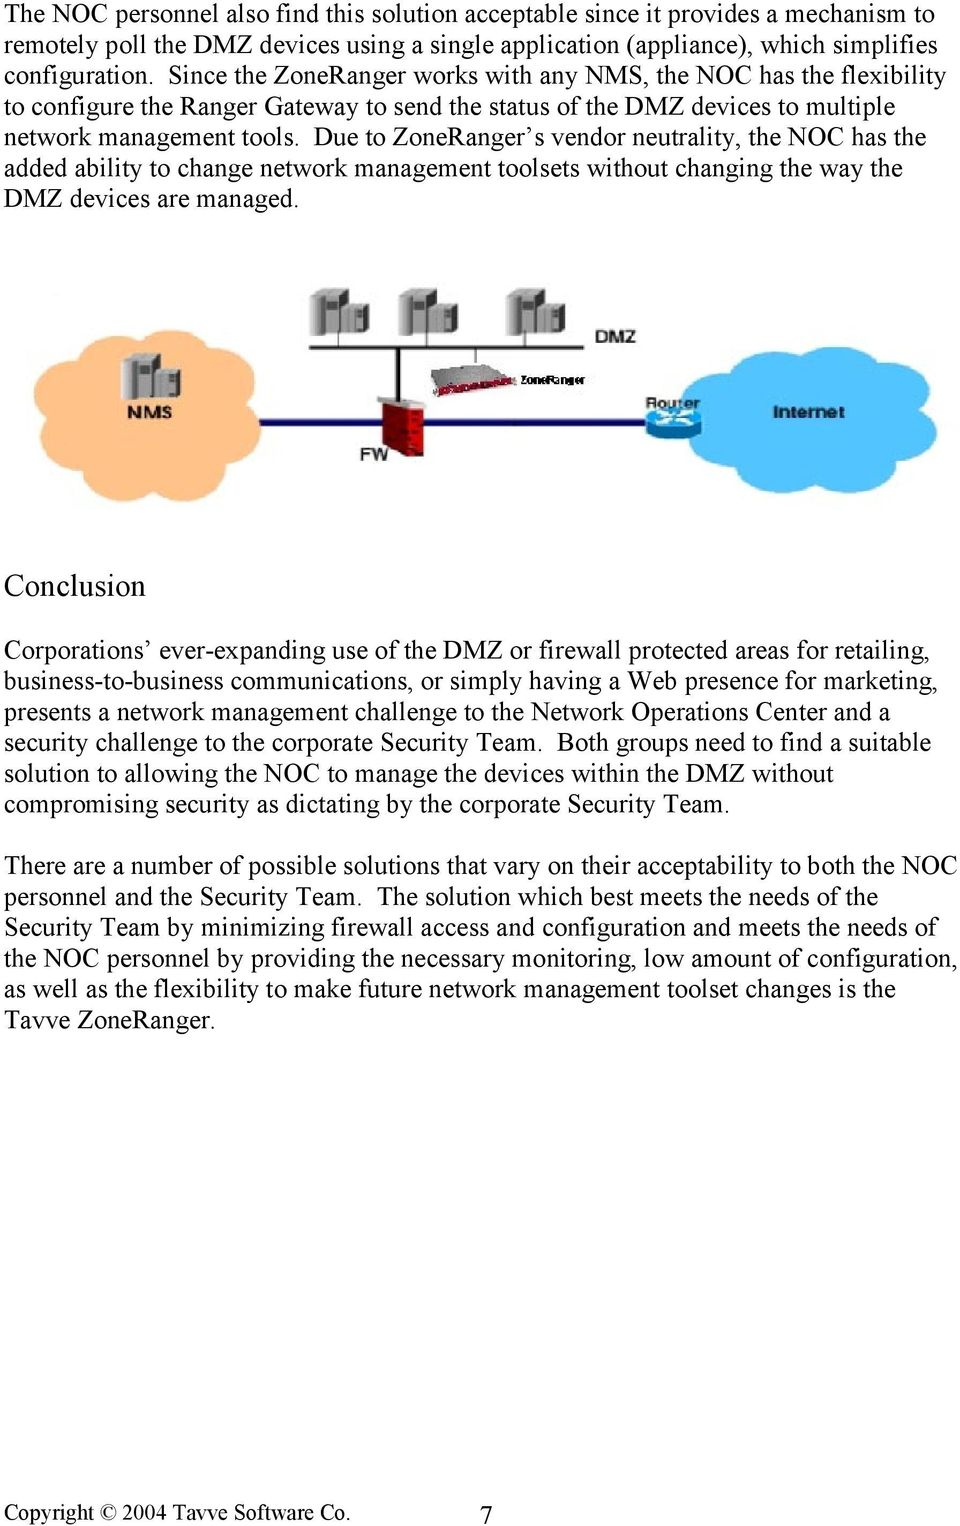 Due to ZoneRanger s vendor neutrality, the NOC has the added ability to change network management toolsets without changing the way the DMZ devices are managed.